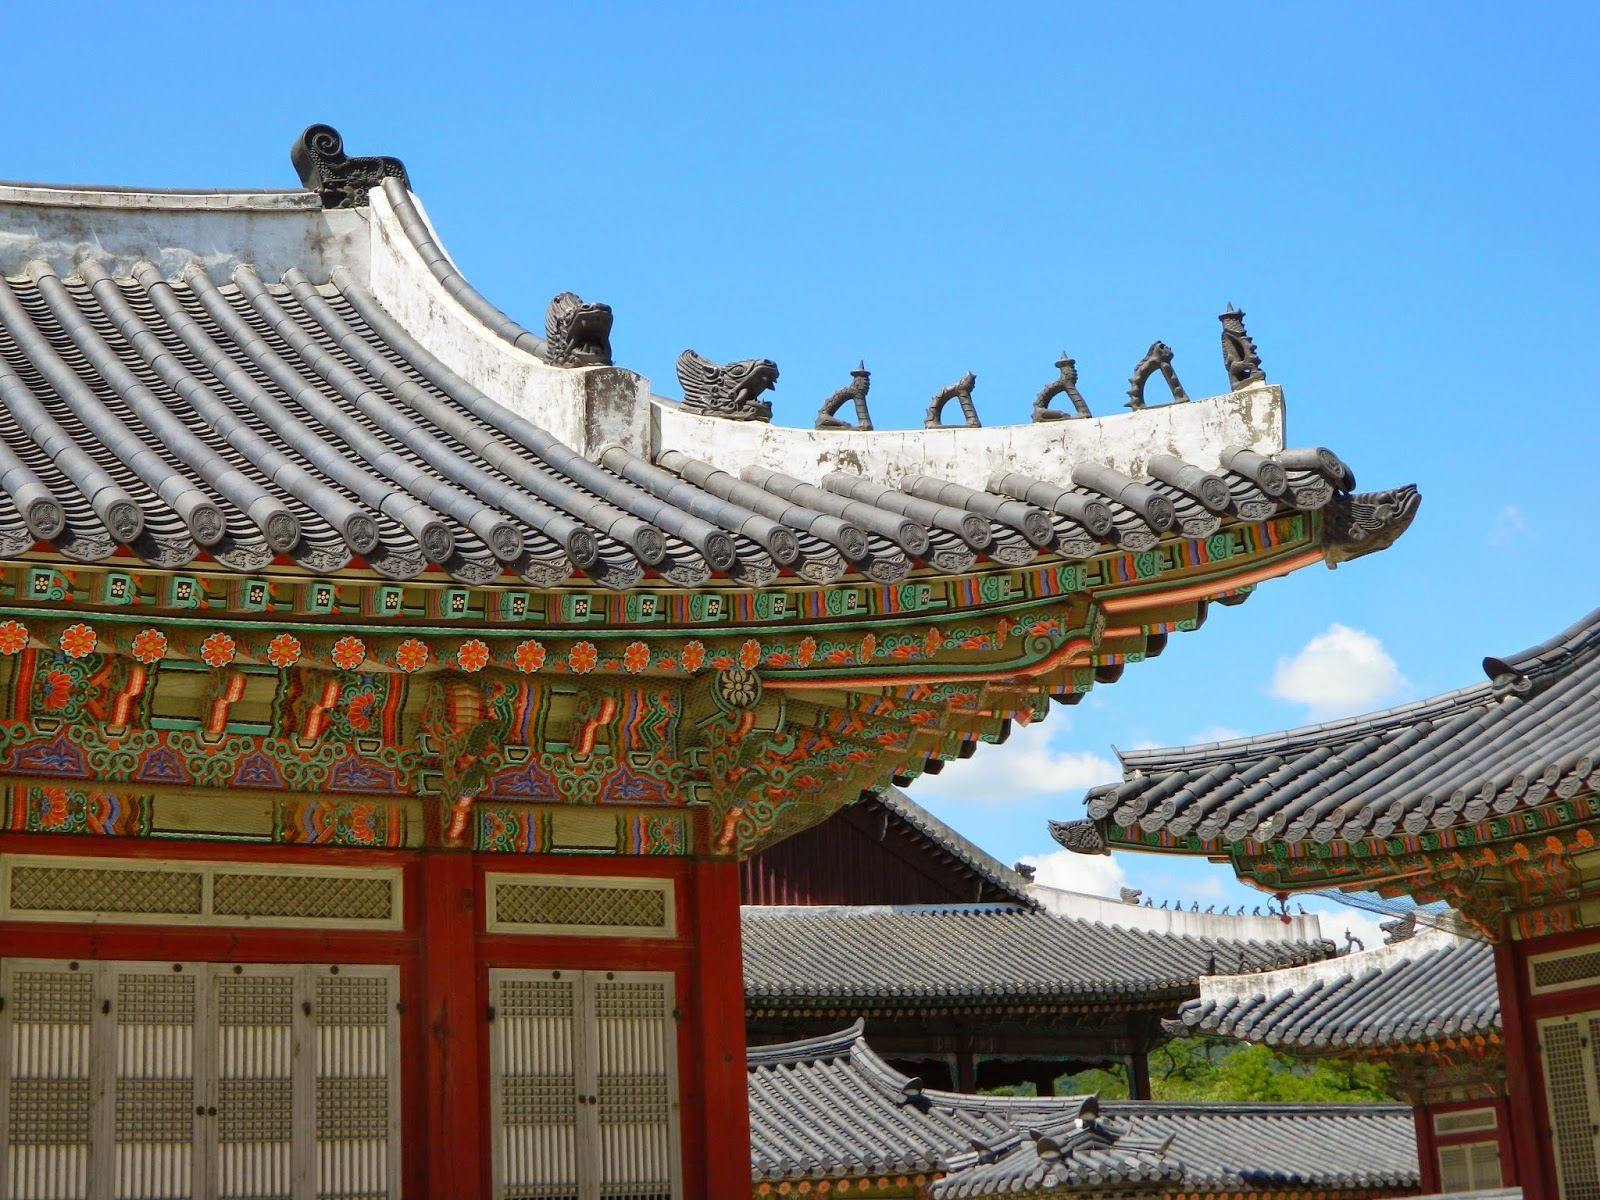 Slopey roofs of the Gyeongbokgung